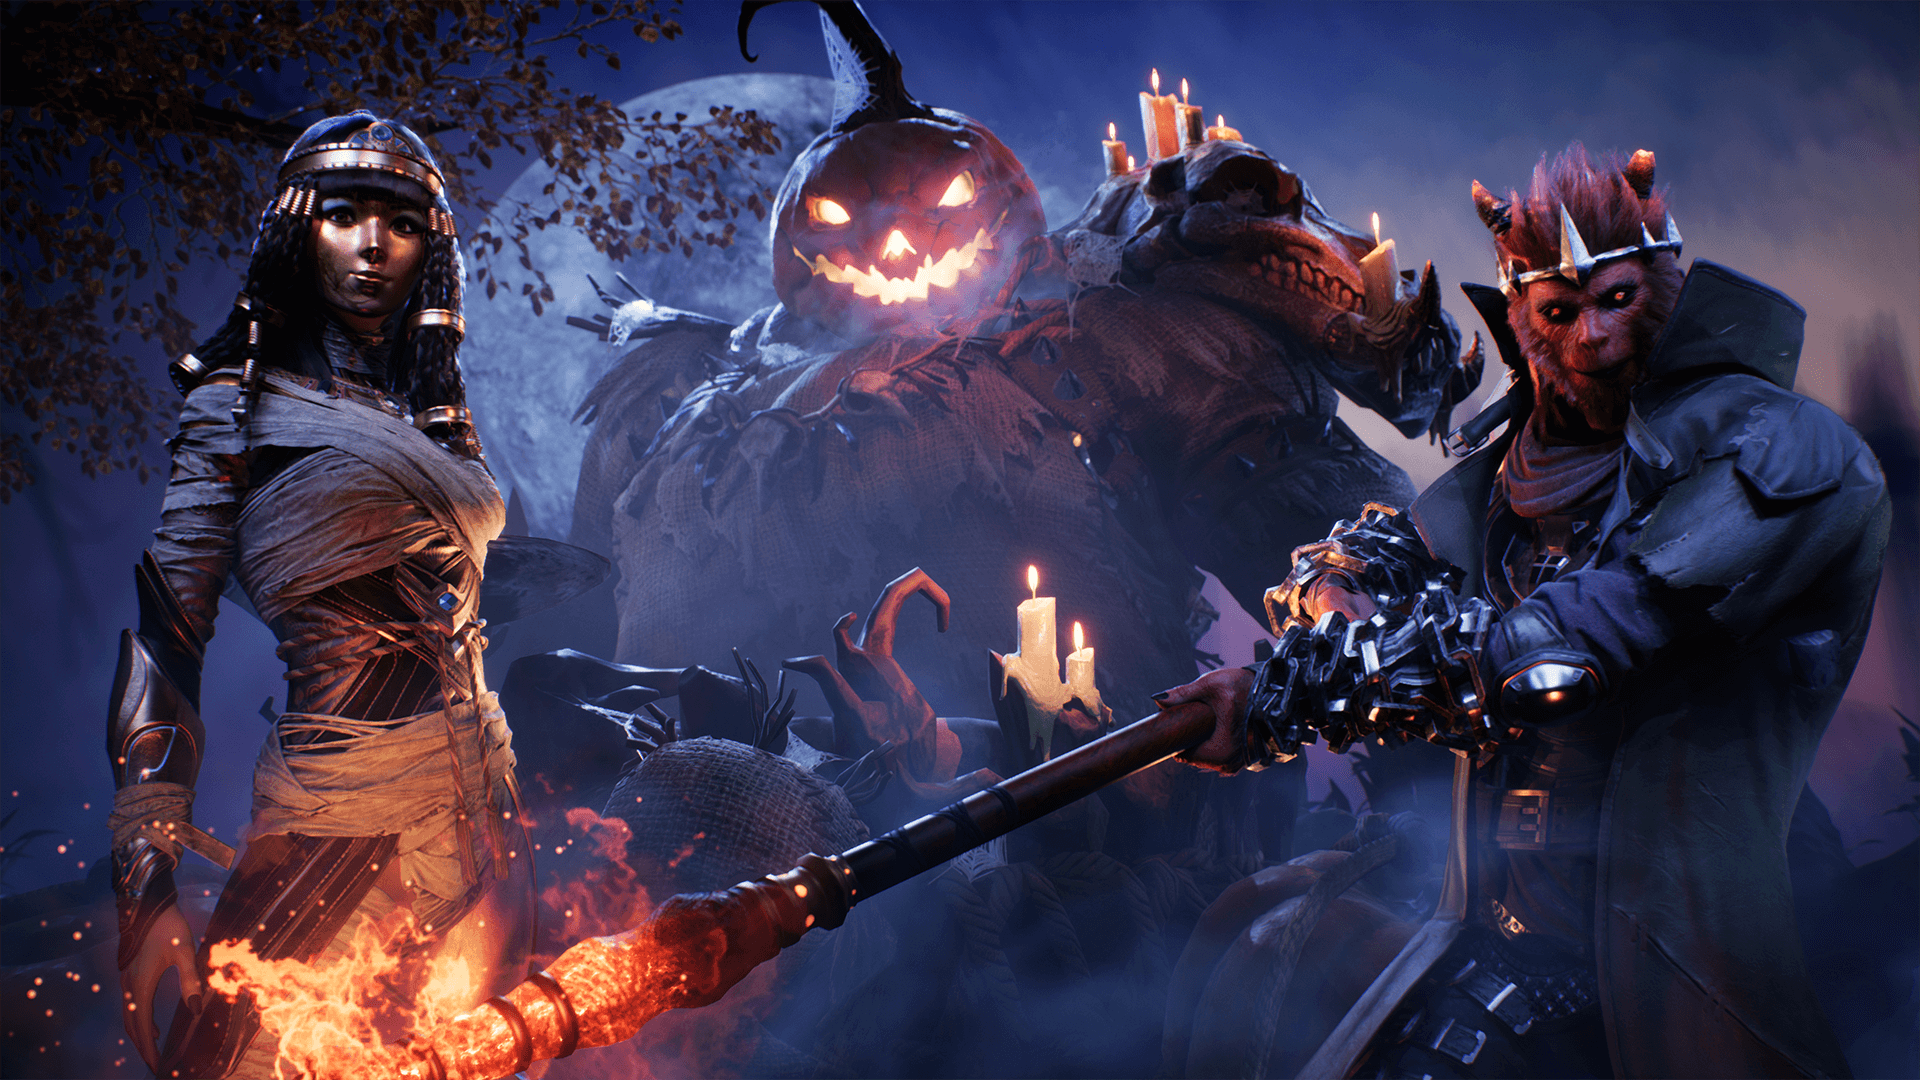 Paragon%2Fblog%2Fpatch-v-43-3-notes%2FHalloween_Final-1920x1080-fd9c6d3fc06219d3b94b3906725356b8ceedb833